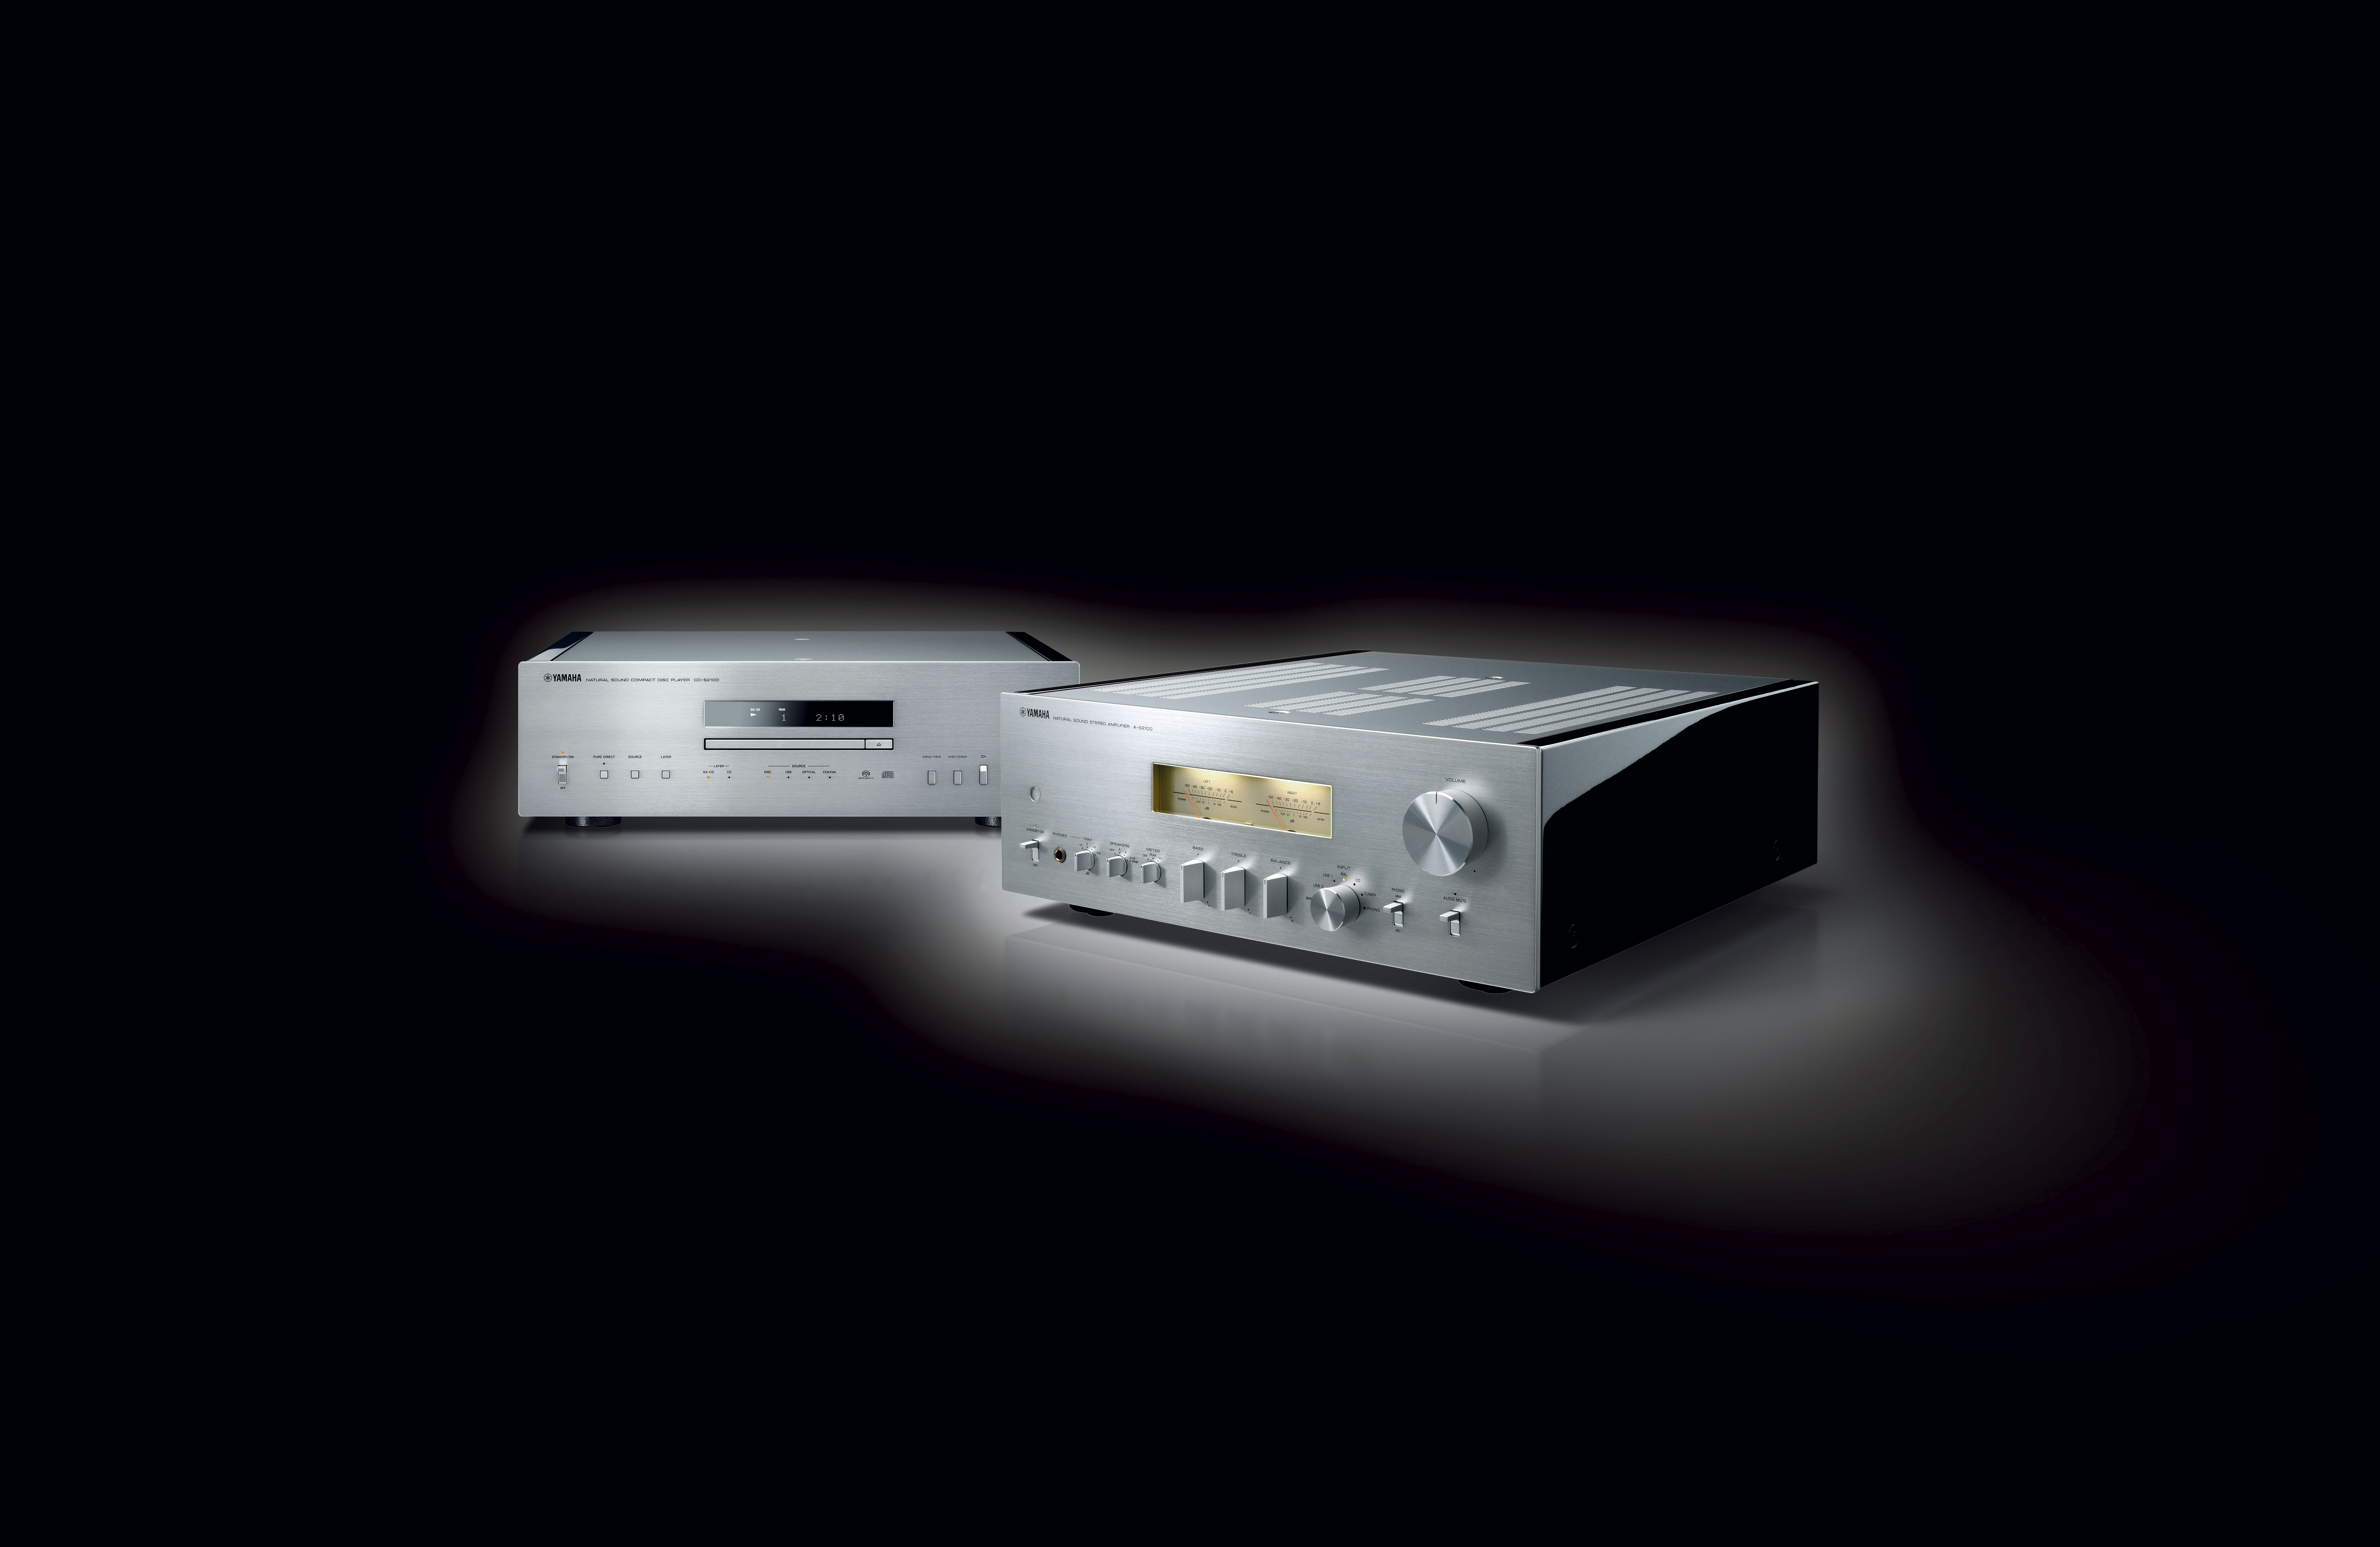 yamaha a s2100 amp and cd s2100 cd player let listeners. Black Bedroom Furniture Sets. Home Design Ideas